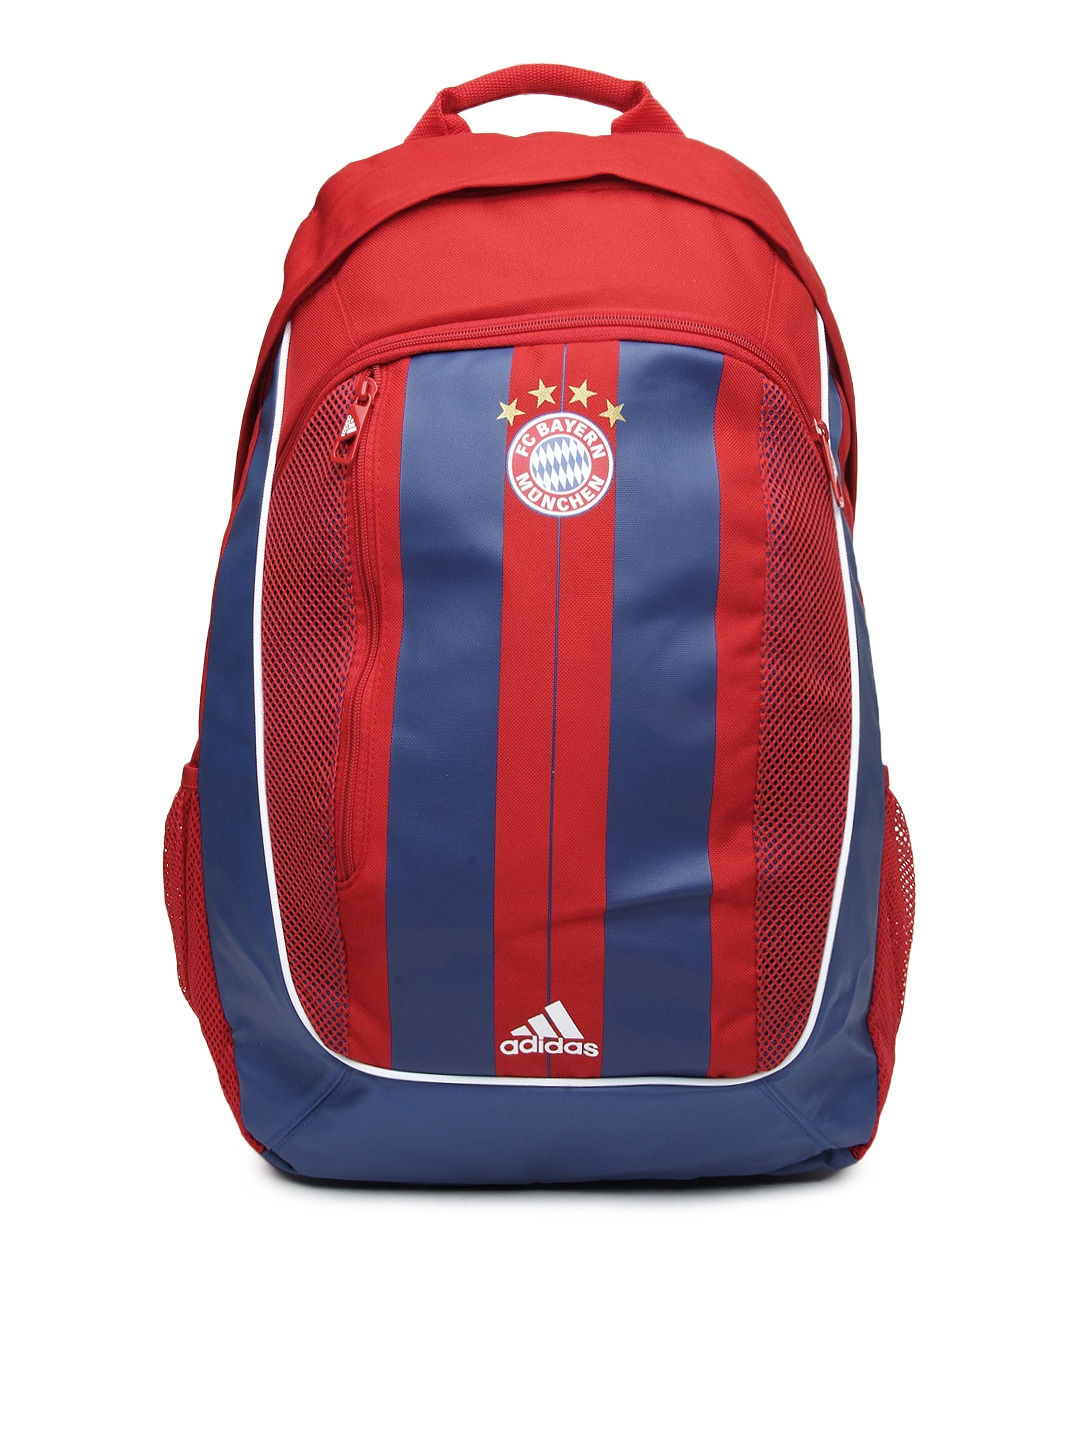 47450e044315 Adidas m60172 Unisex Red Fc Bayern Munchen Backpack - Best ...